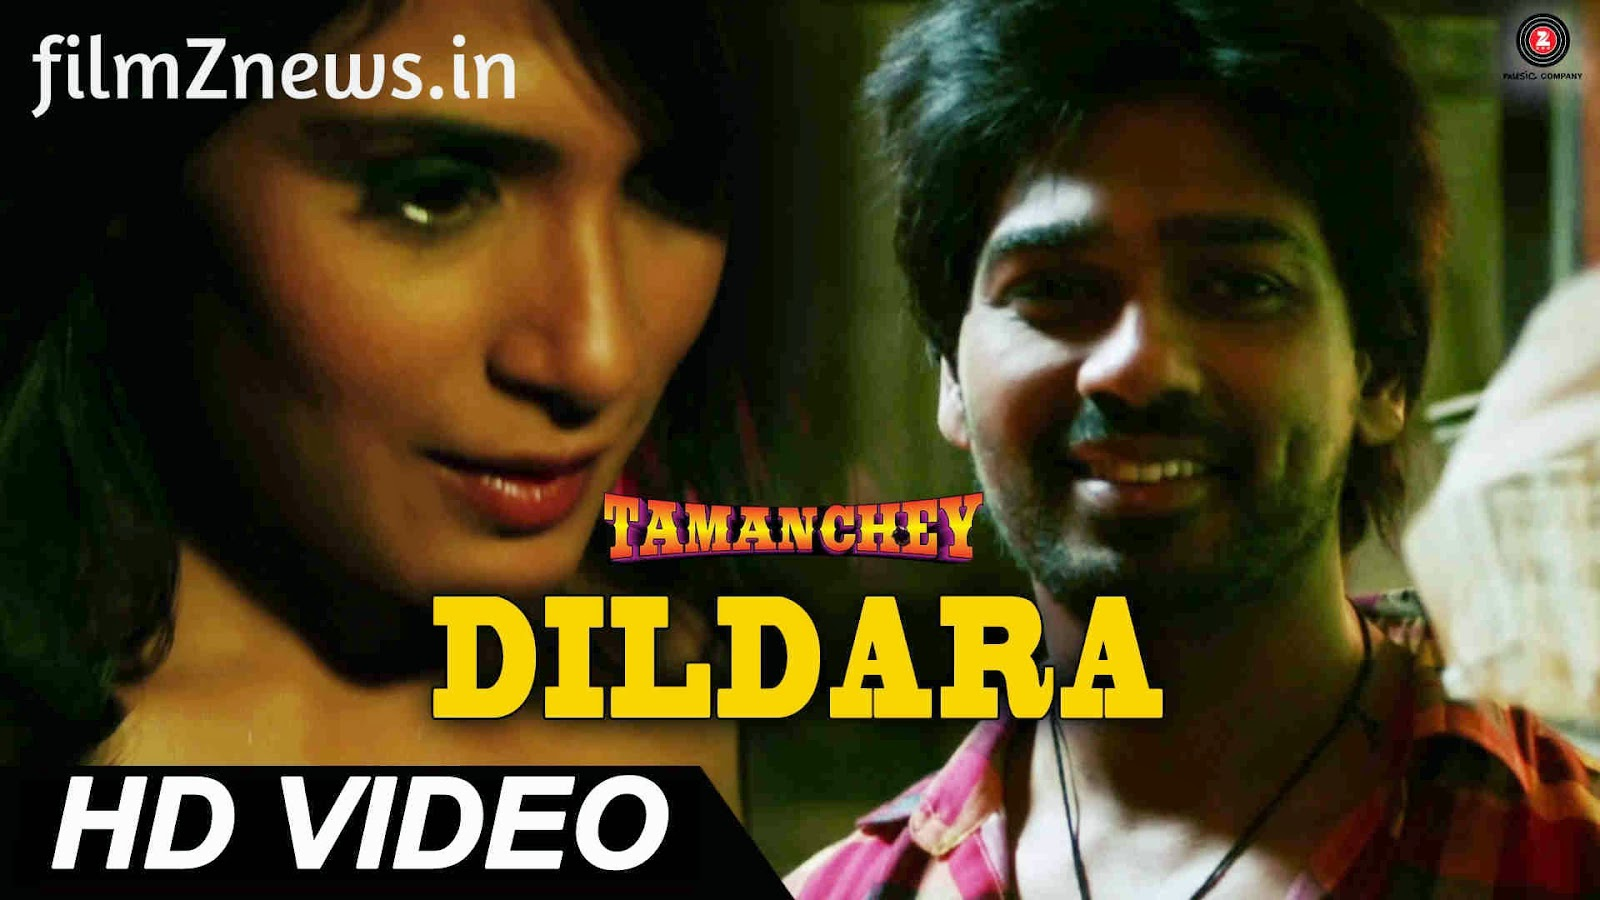 Dildara video from Tamanchey (2014) - Nikhil Dwivedi & Richa Chadda, Sonu Nigam